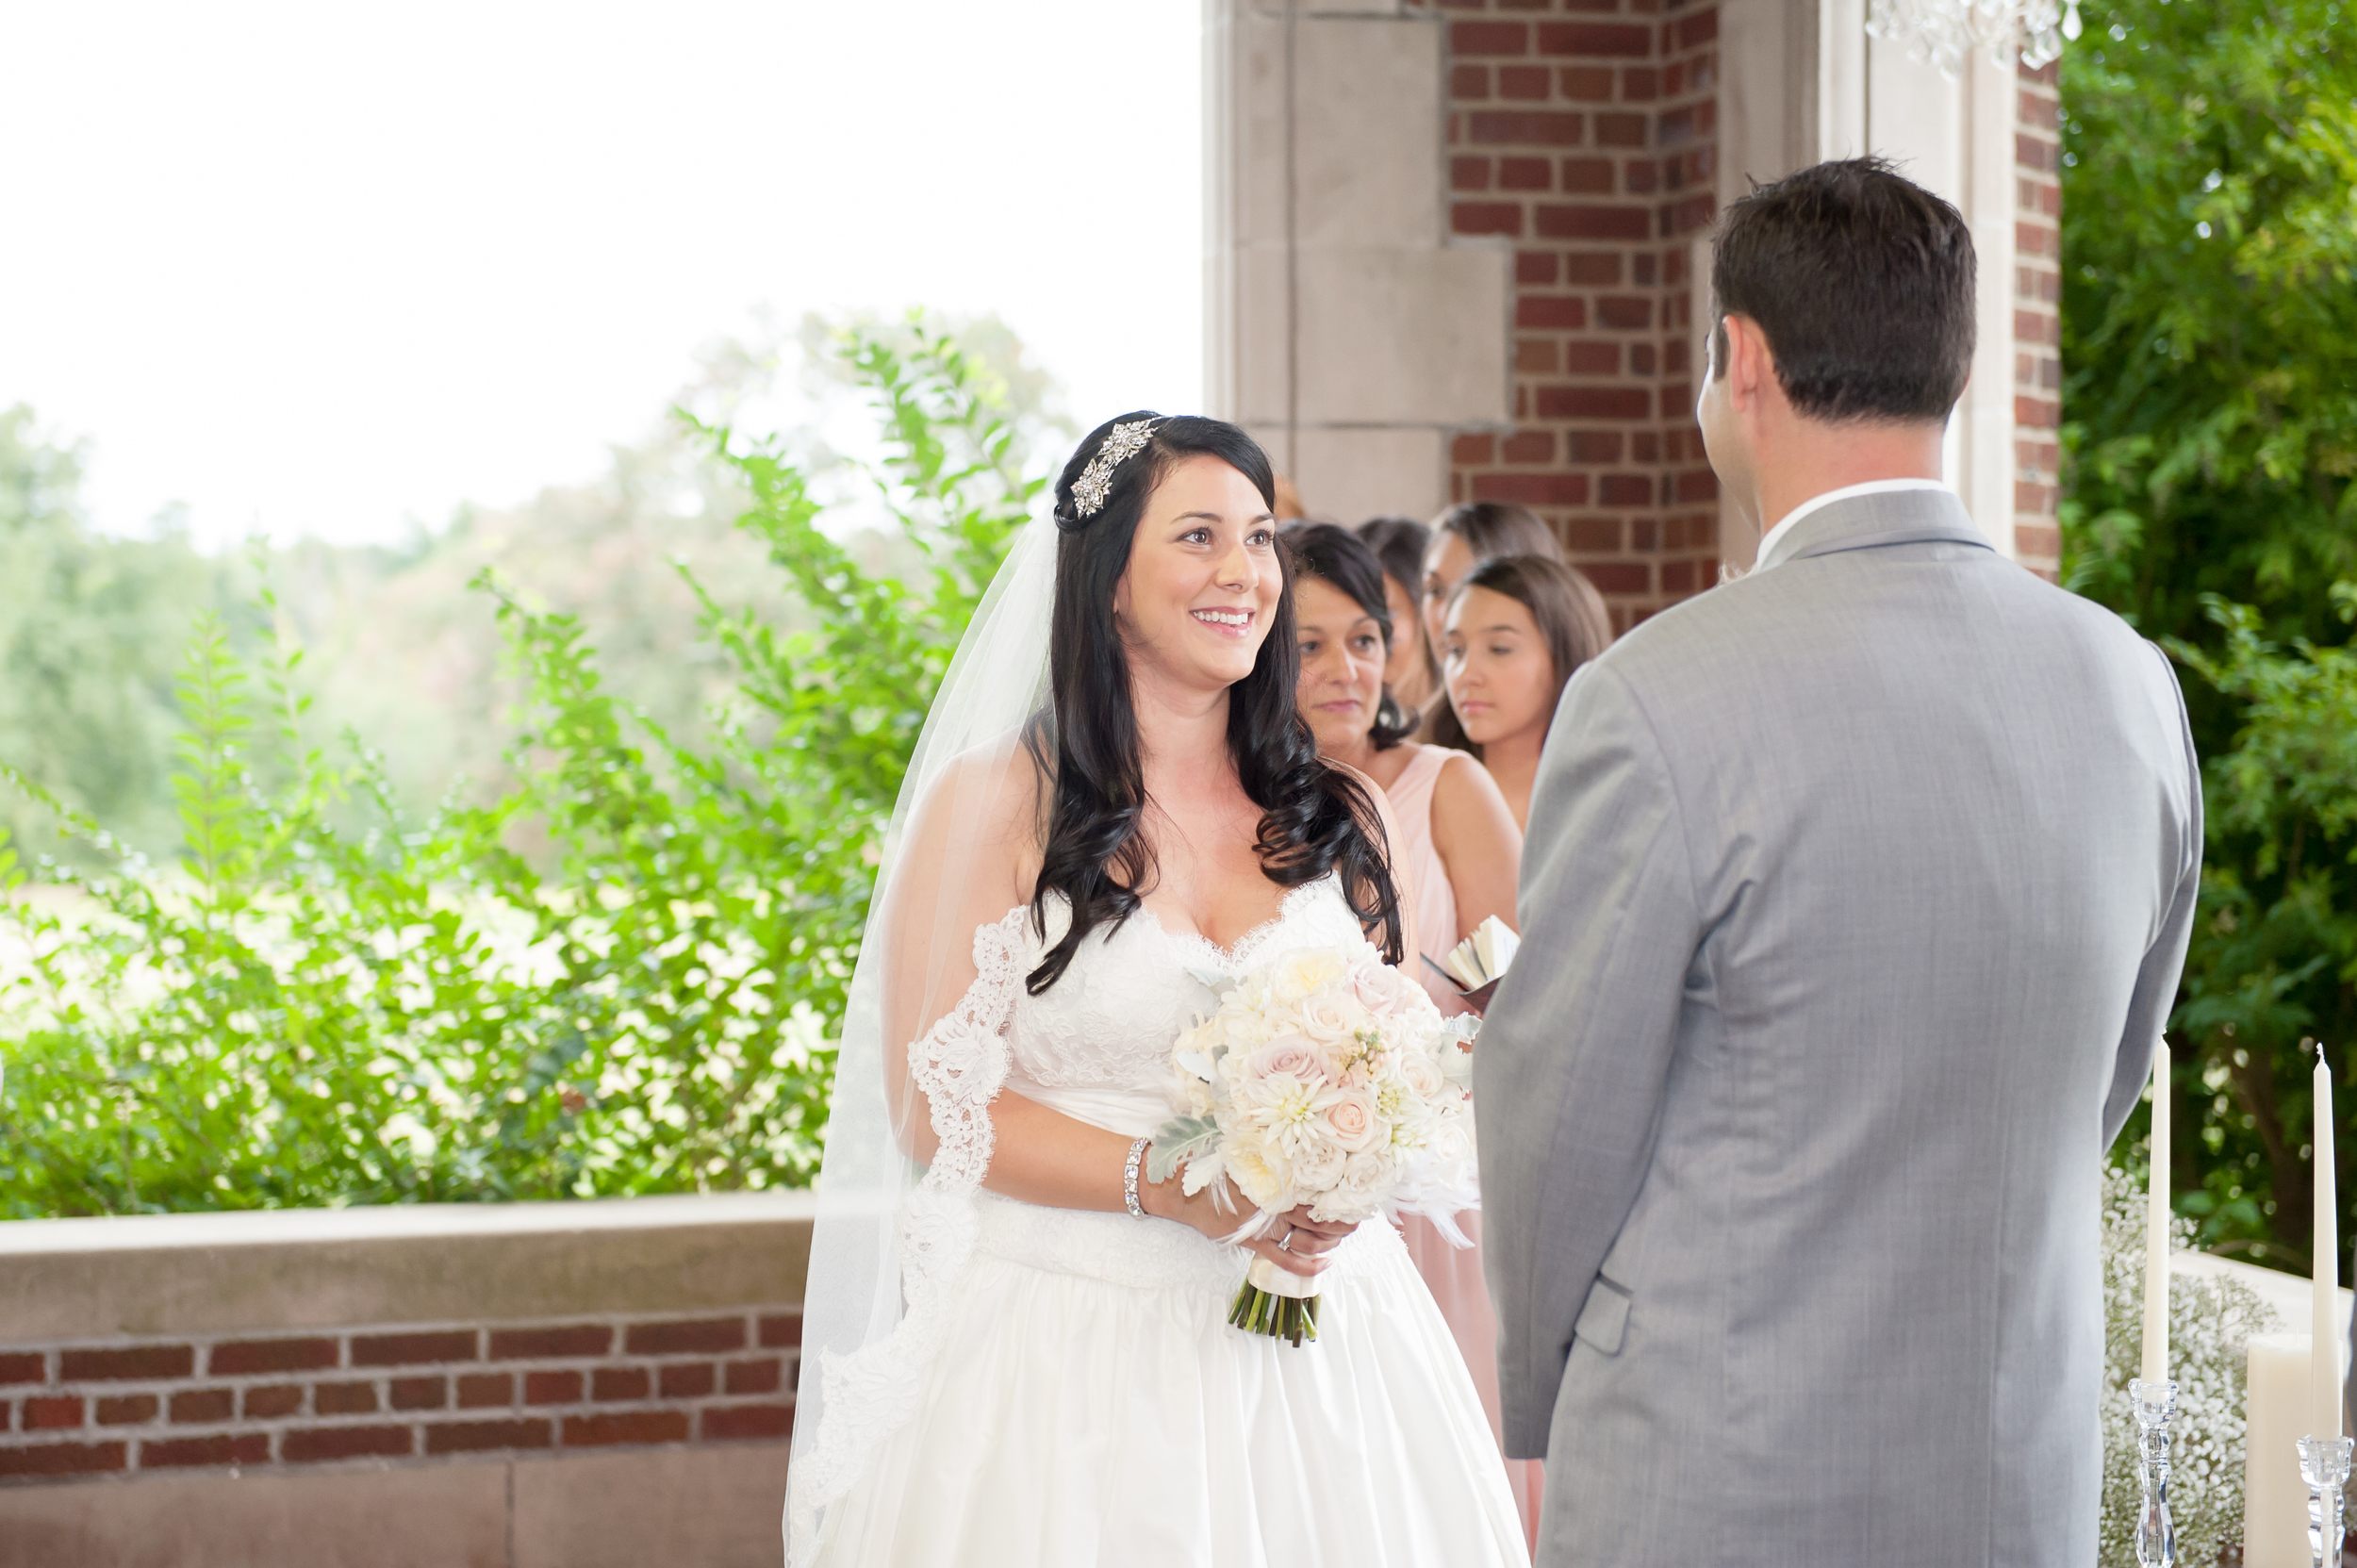 waveny_house_wedding_New_canaan_CT_Amy_Champagne_Events626.jpg